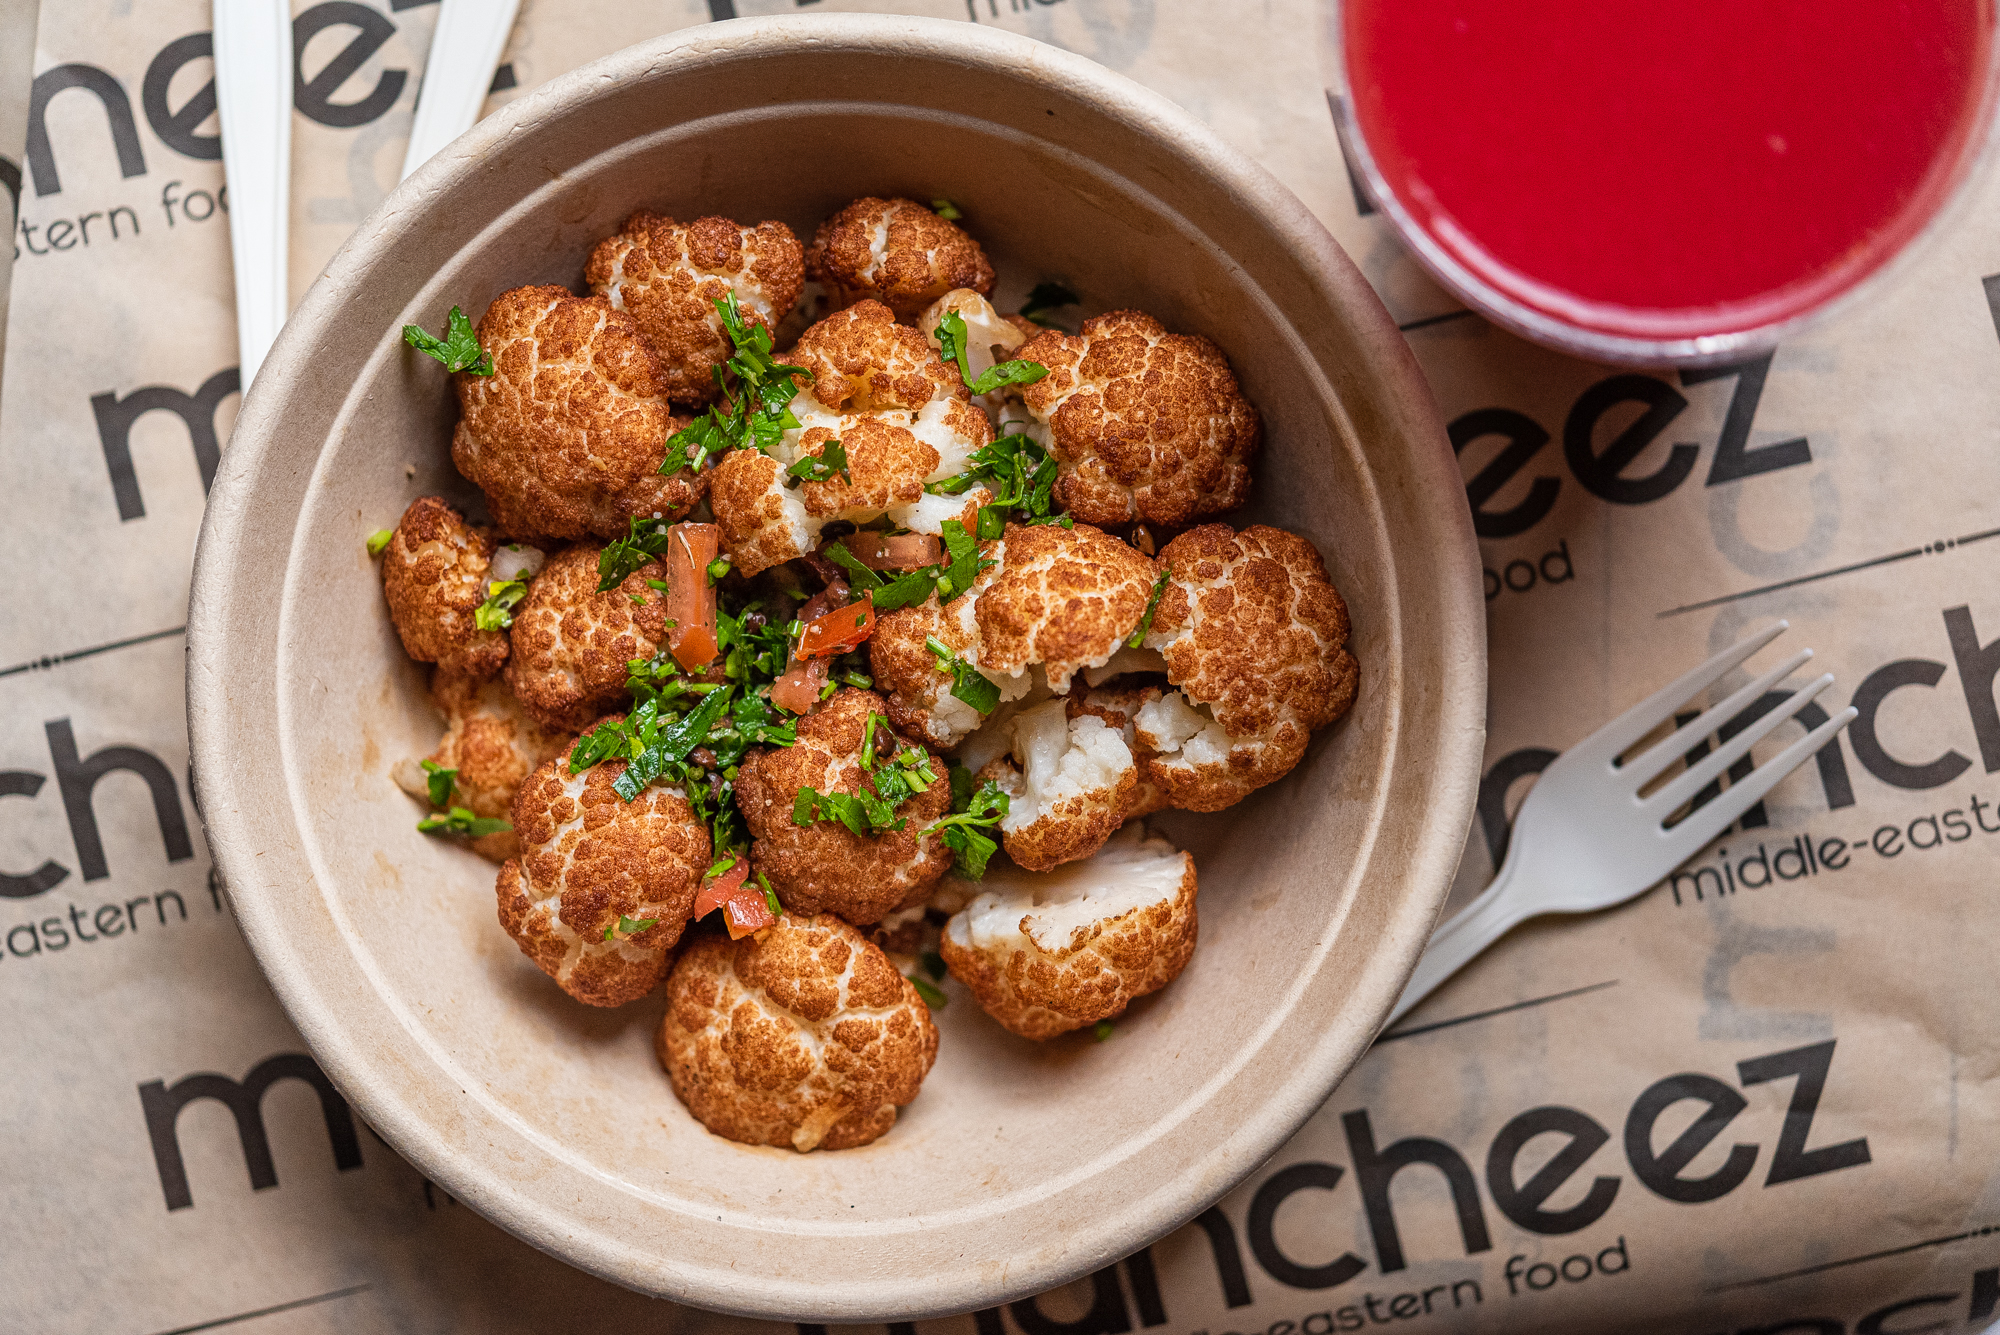 Inside Dupont's New Muncheez, Opening This Week With Late-Night Cauliflower